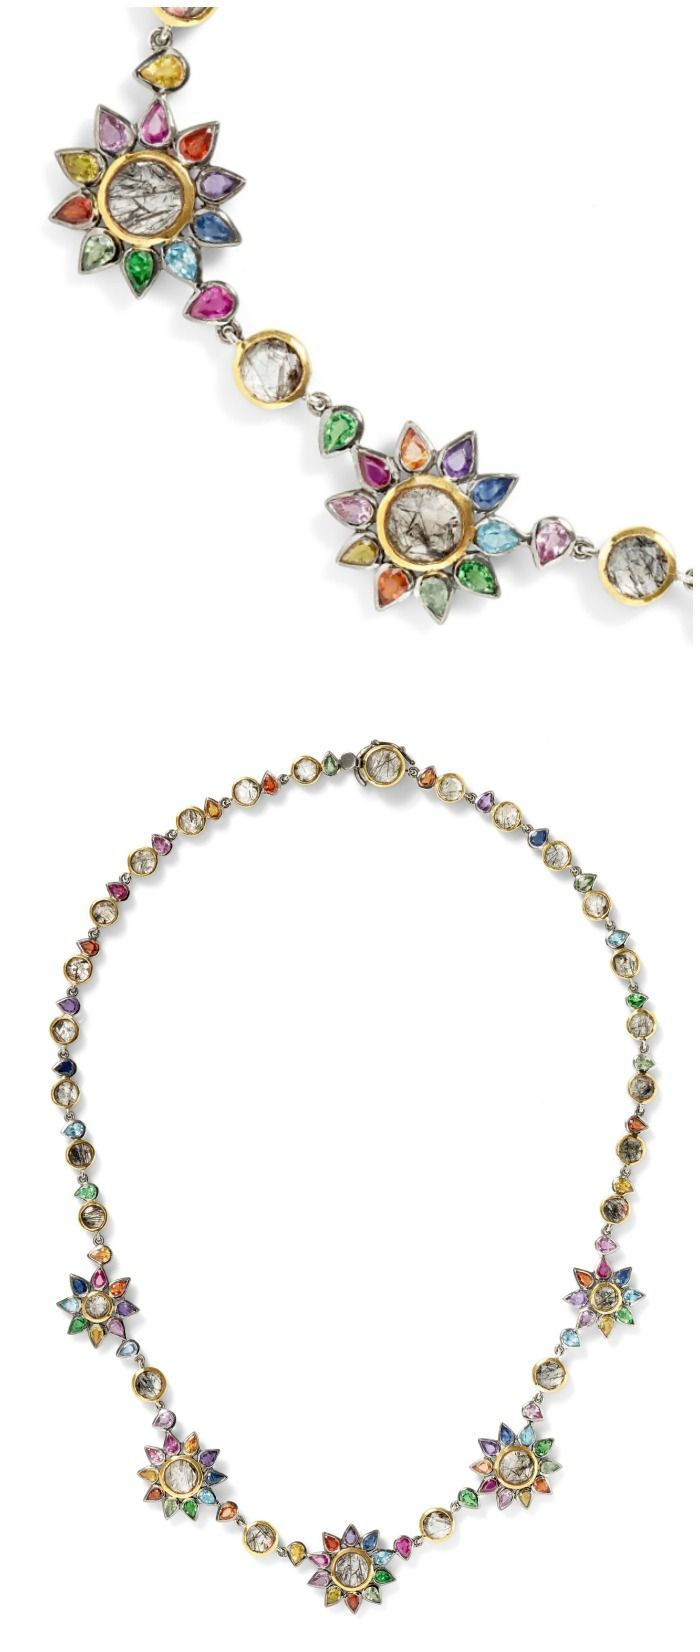 The beautiful Daisy Chain necklace by SheBee, with brightly colored sapphires an...